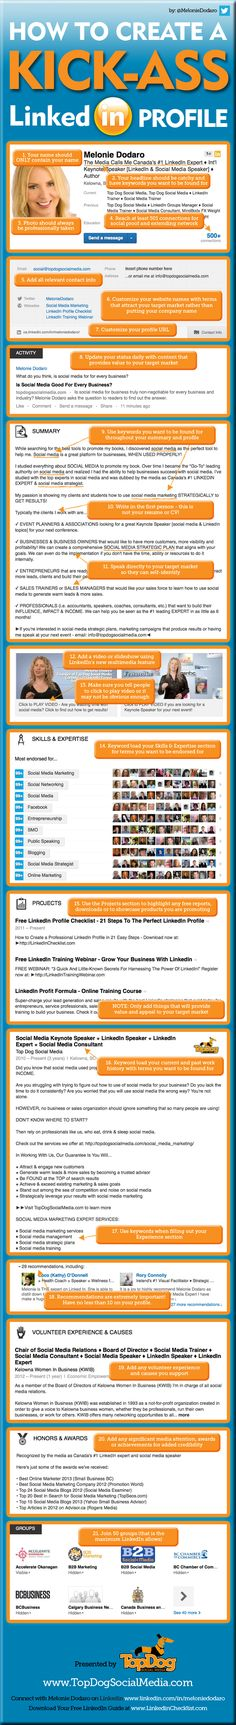 How to Create a Kick-ass Linkedin Profile (SMR)